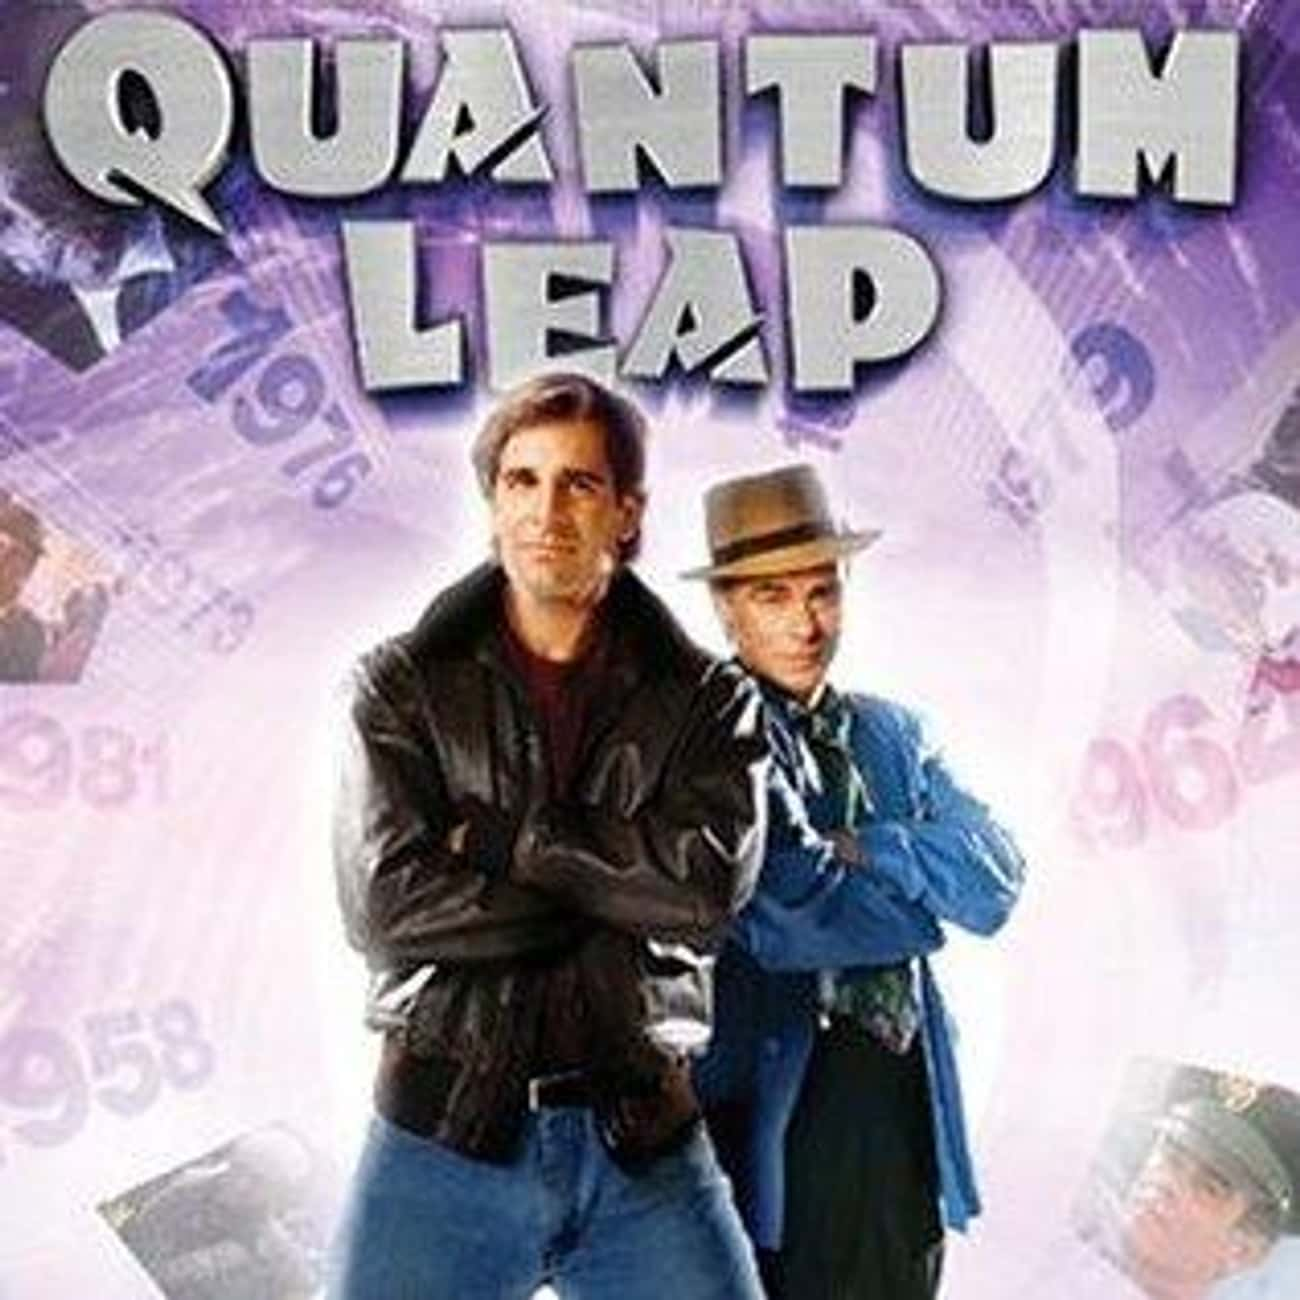 Quantum Leap is listed (or ranked) 3 on the list The Best Shows & Movies About Time Travel